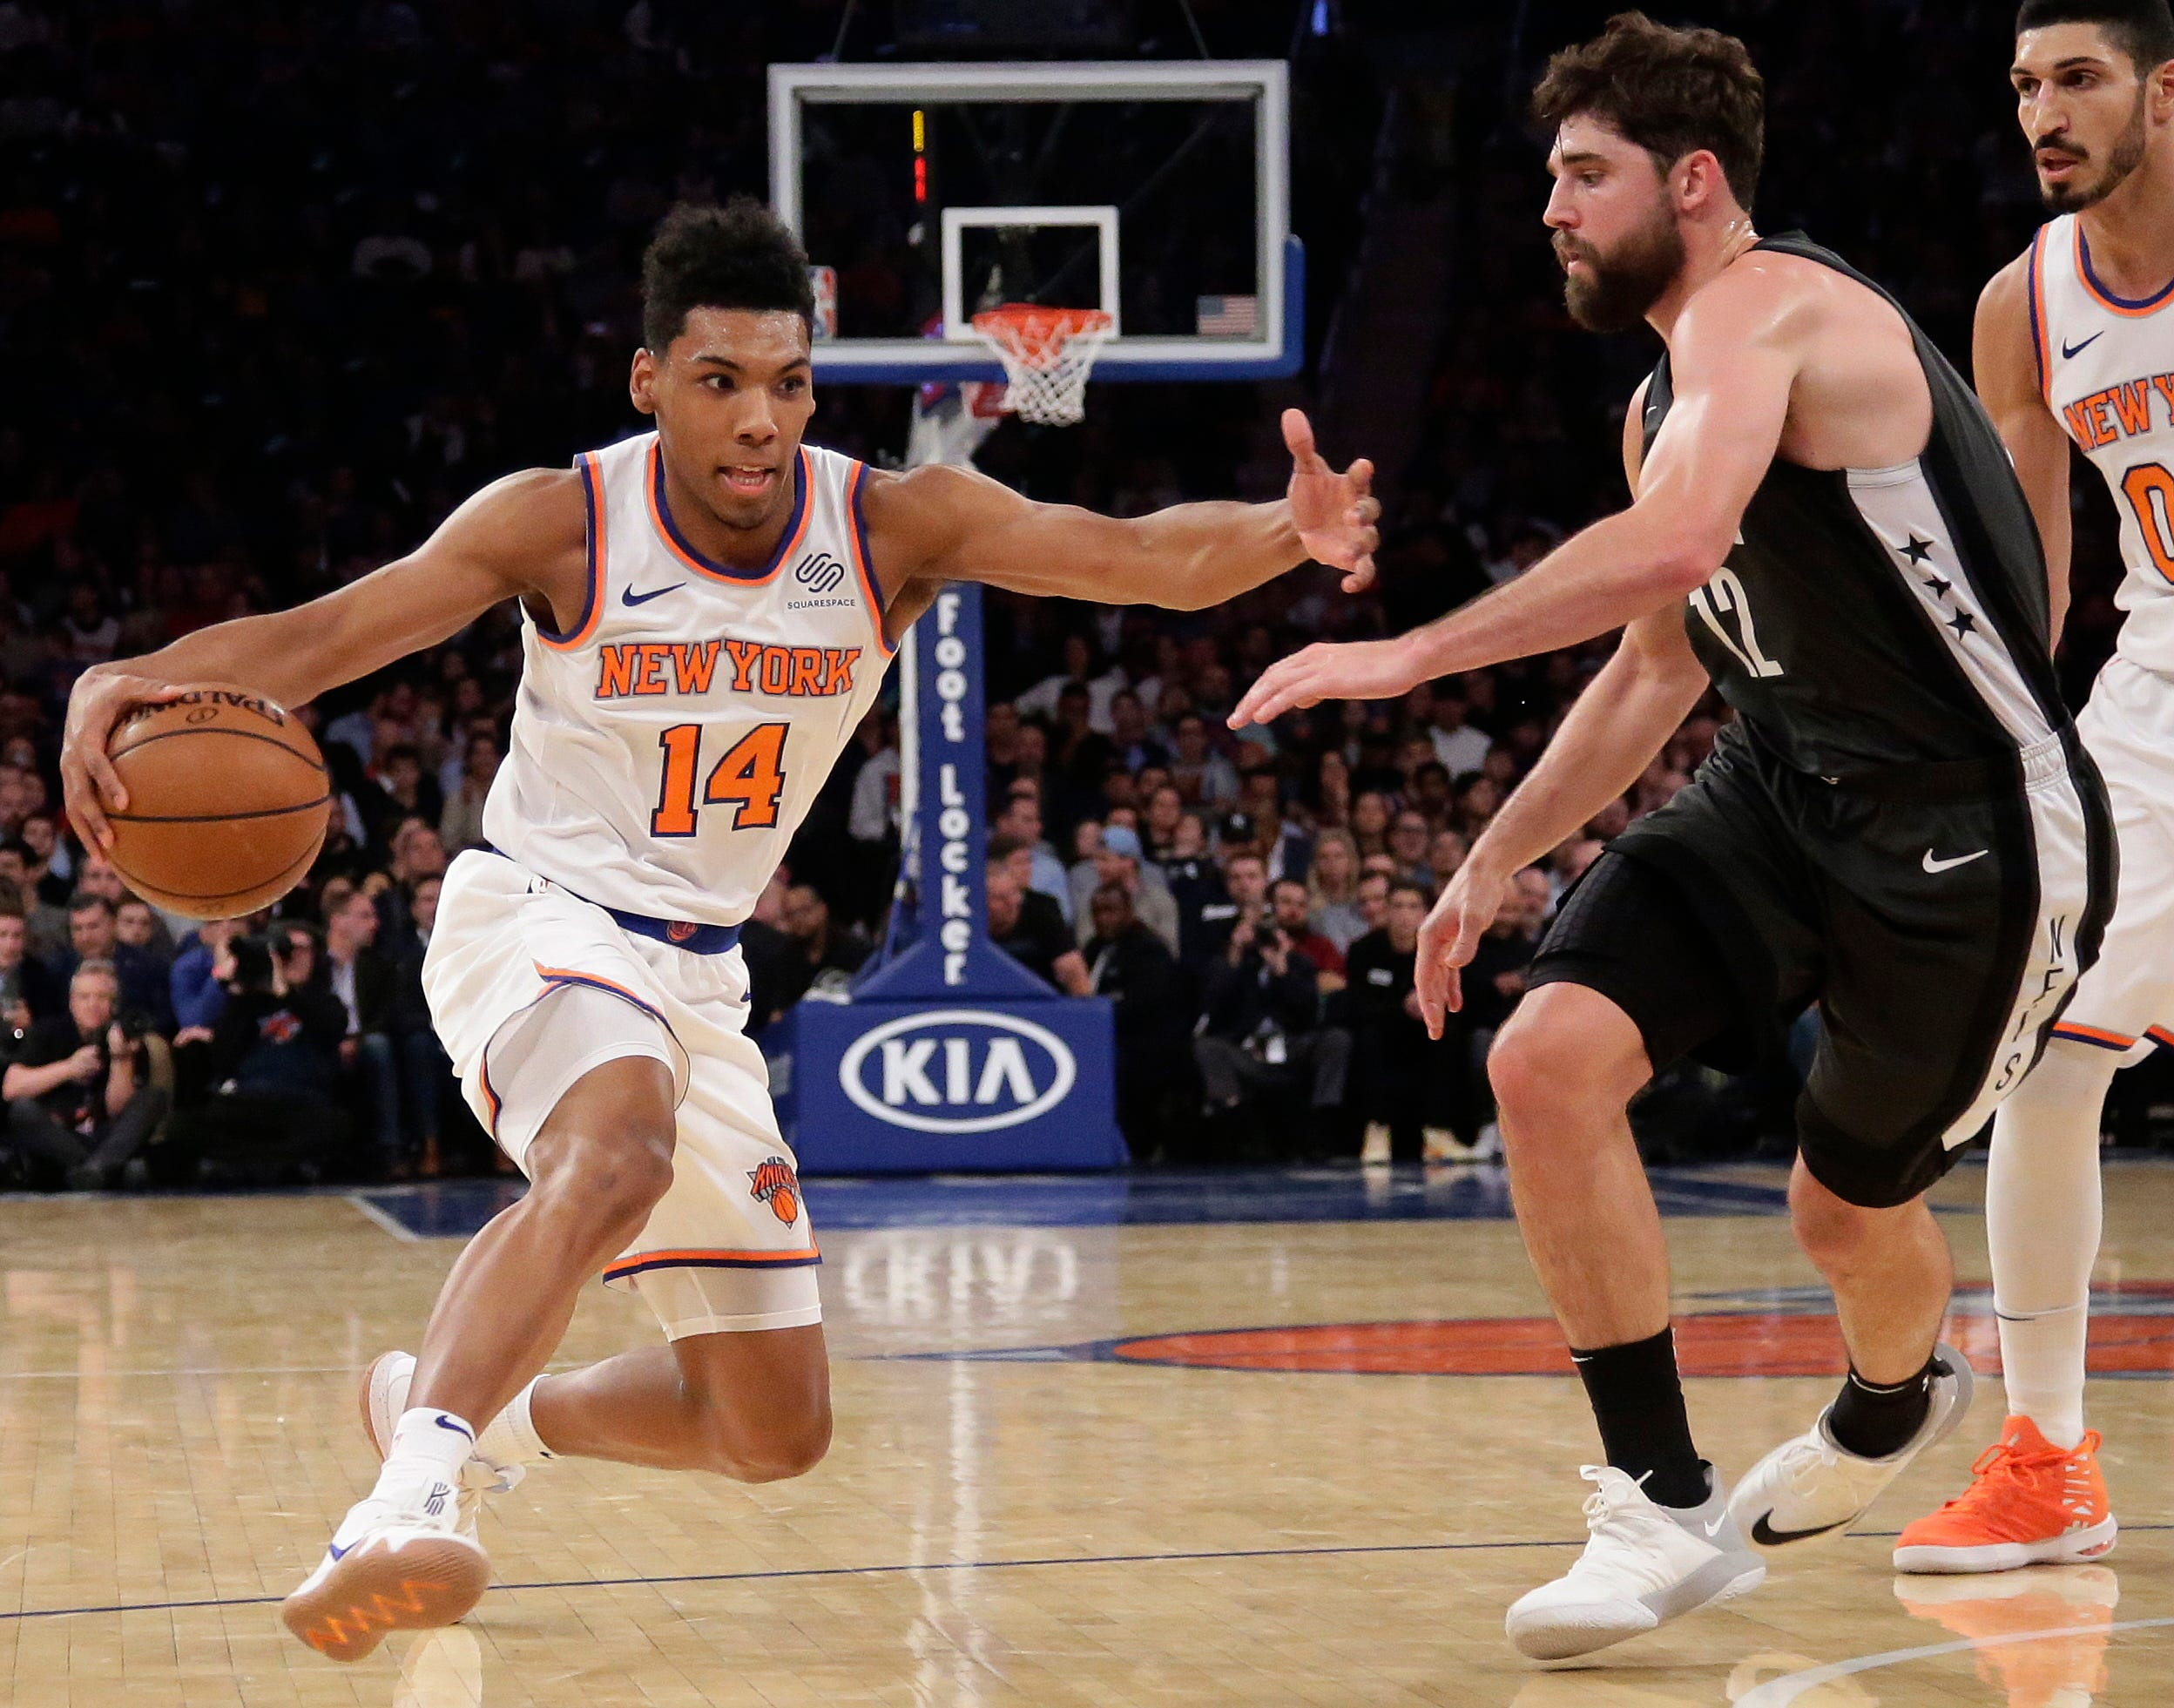 Knicks rout Nets 115-96, end five-game skid